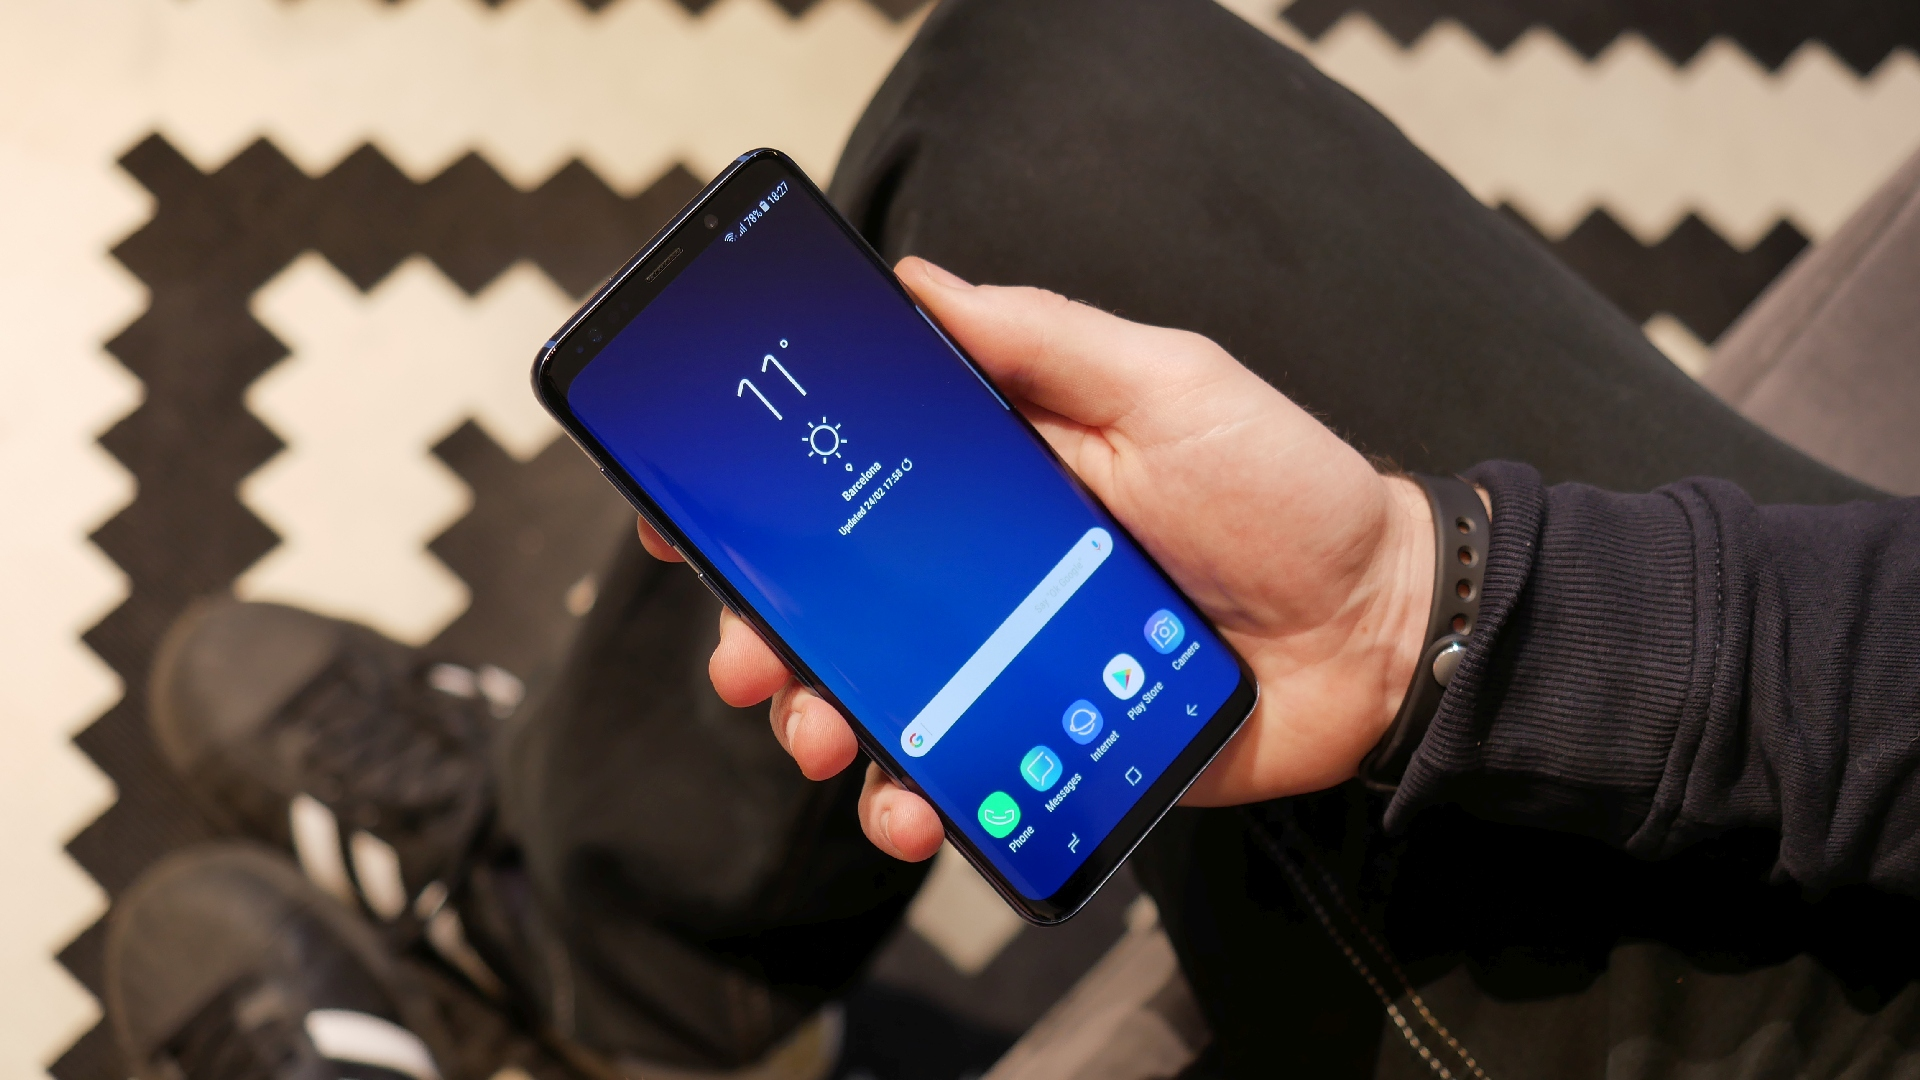 New Galaxy S9 update adds 'Hey Google' voice command for Google app